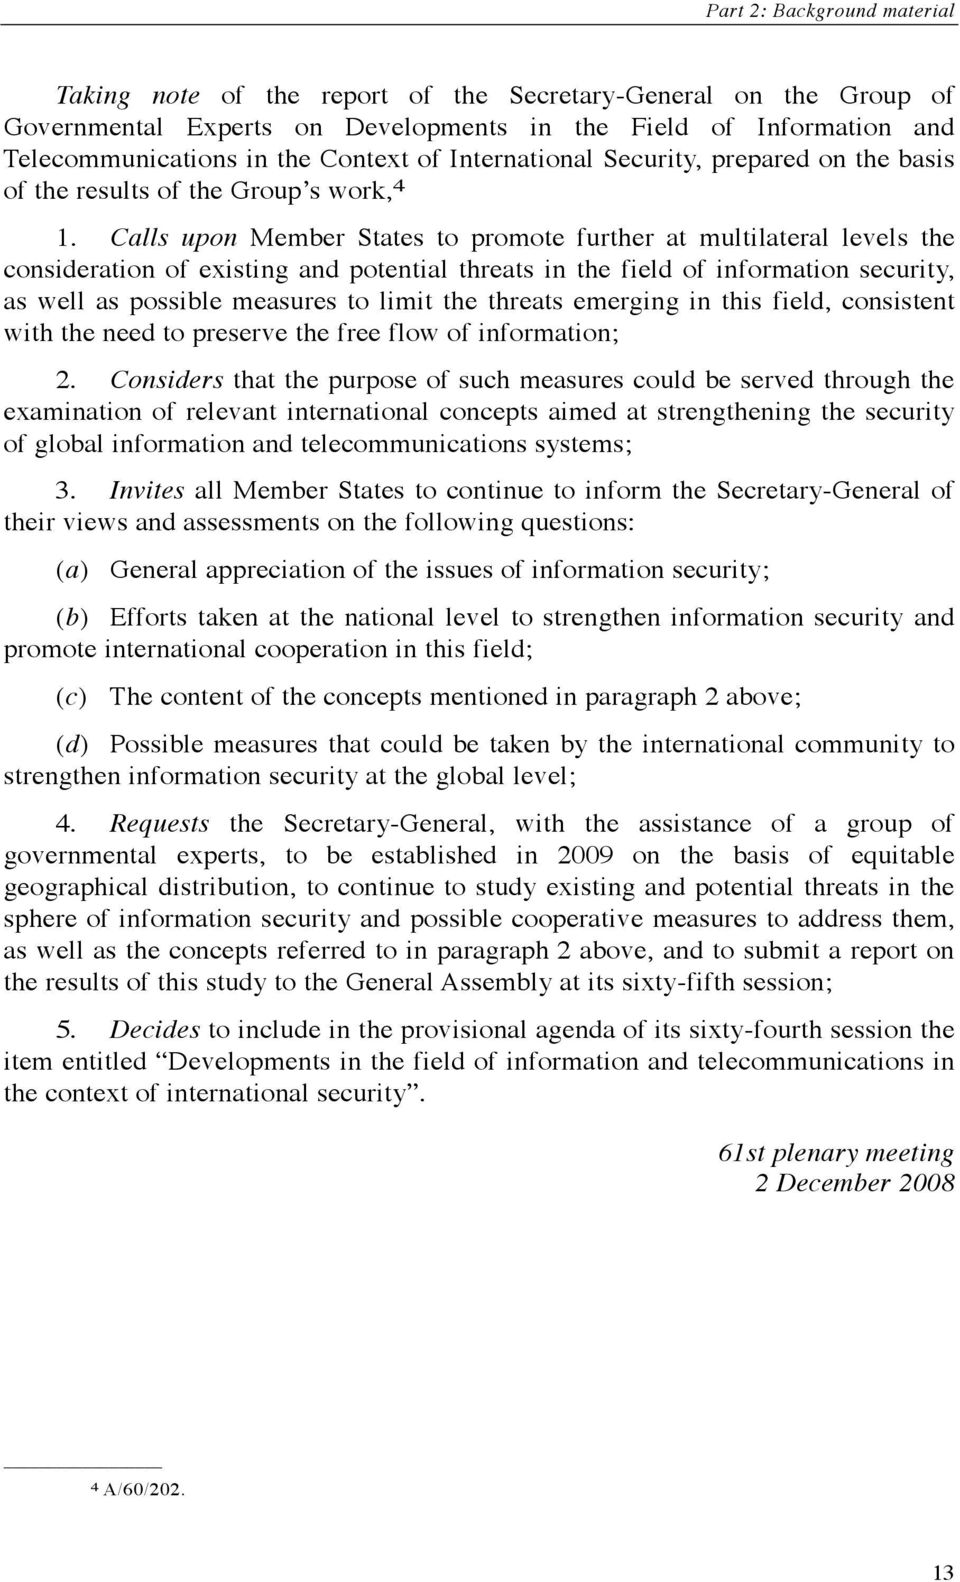 Calls upon Member States to promote further at multilateral levels the consideration of existing and potential threats in the field of information security, as well as possible measures to limit the